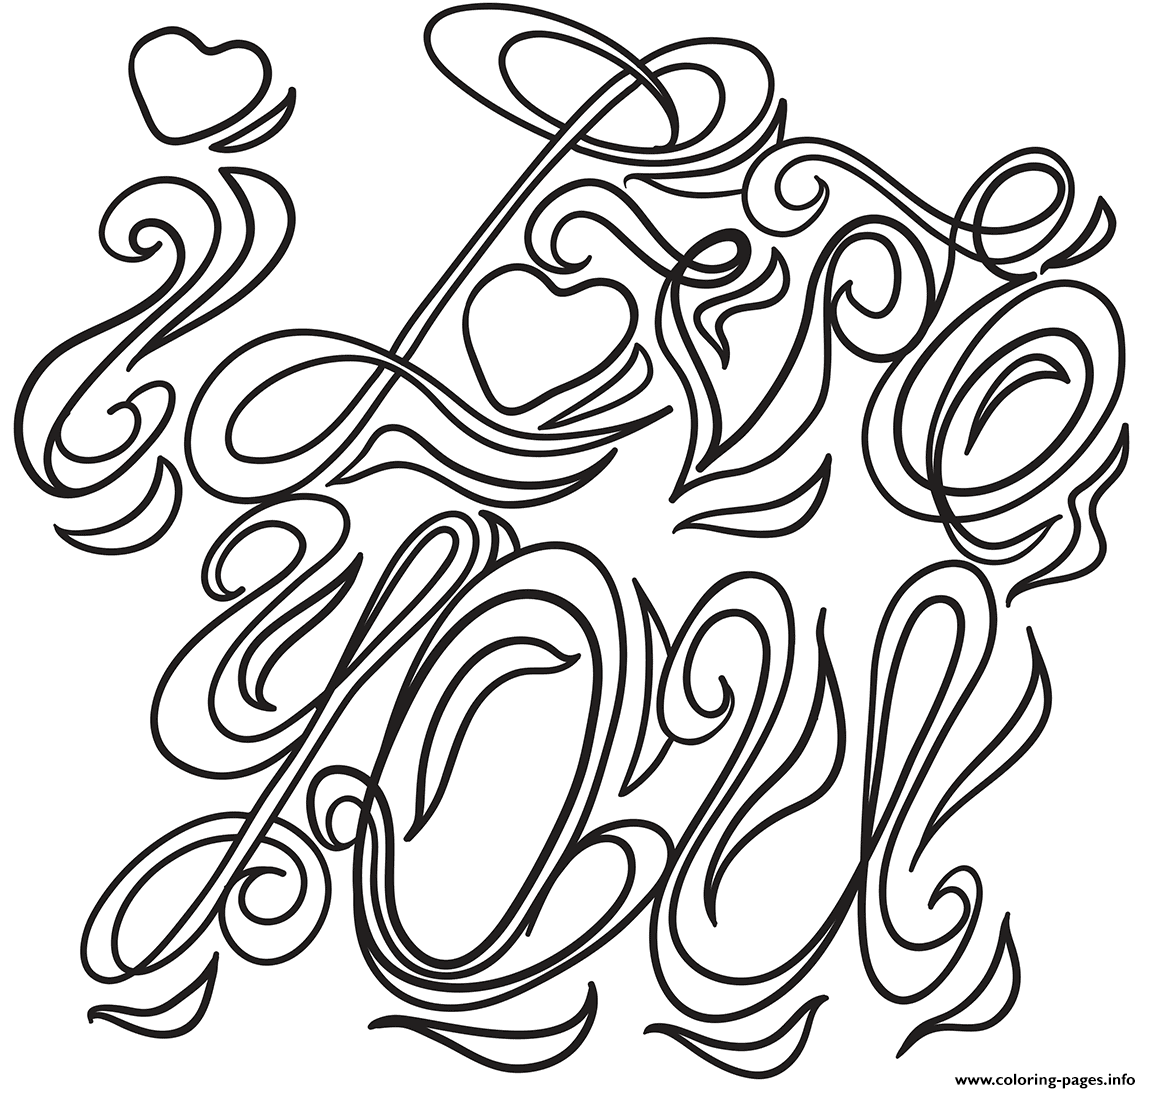 I Love You Coloring Pages To Print – Pusat Hobi